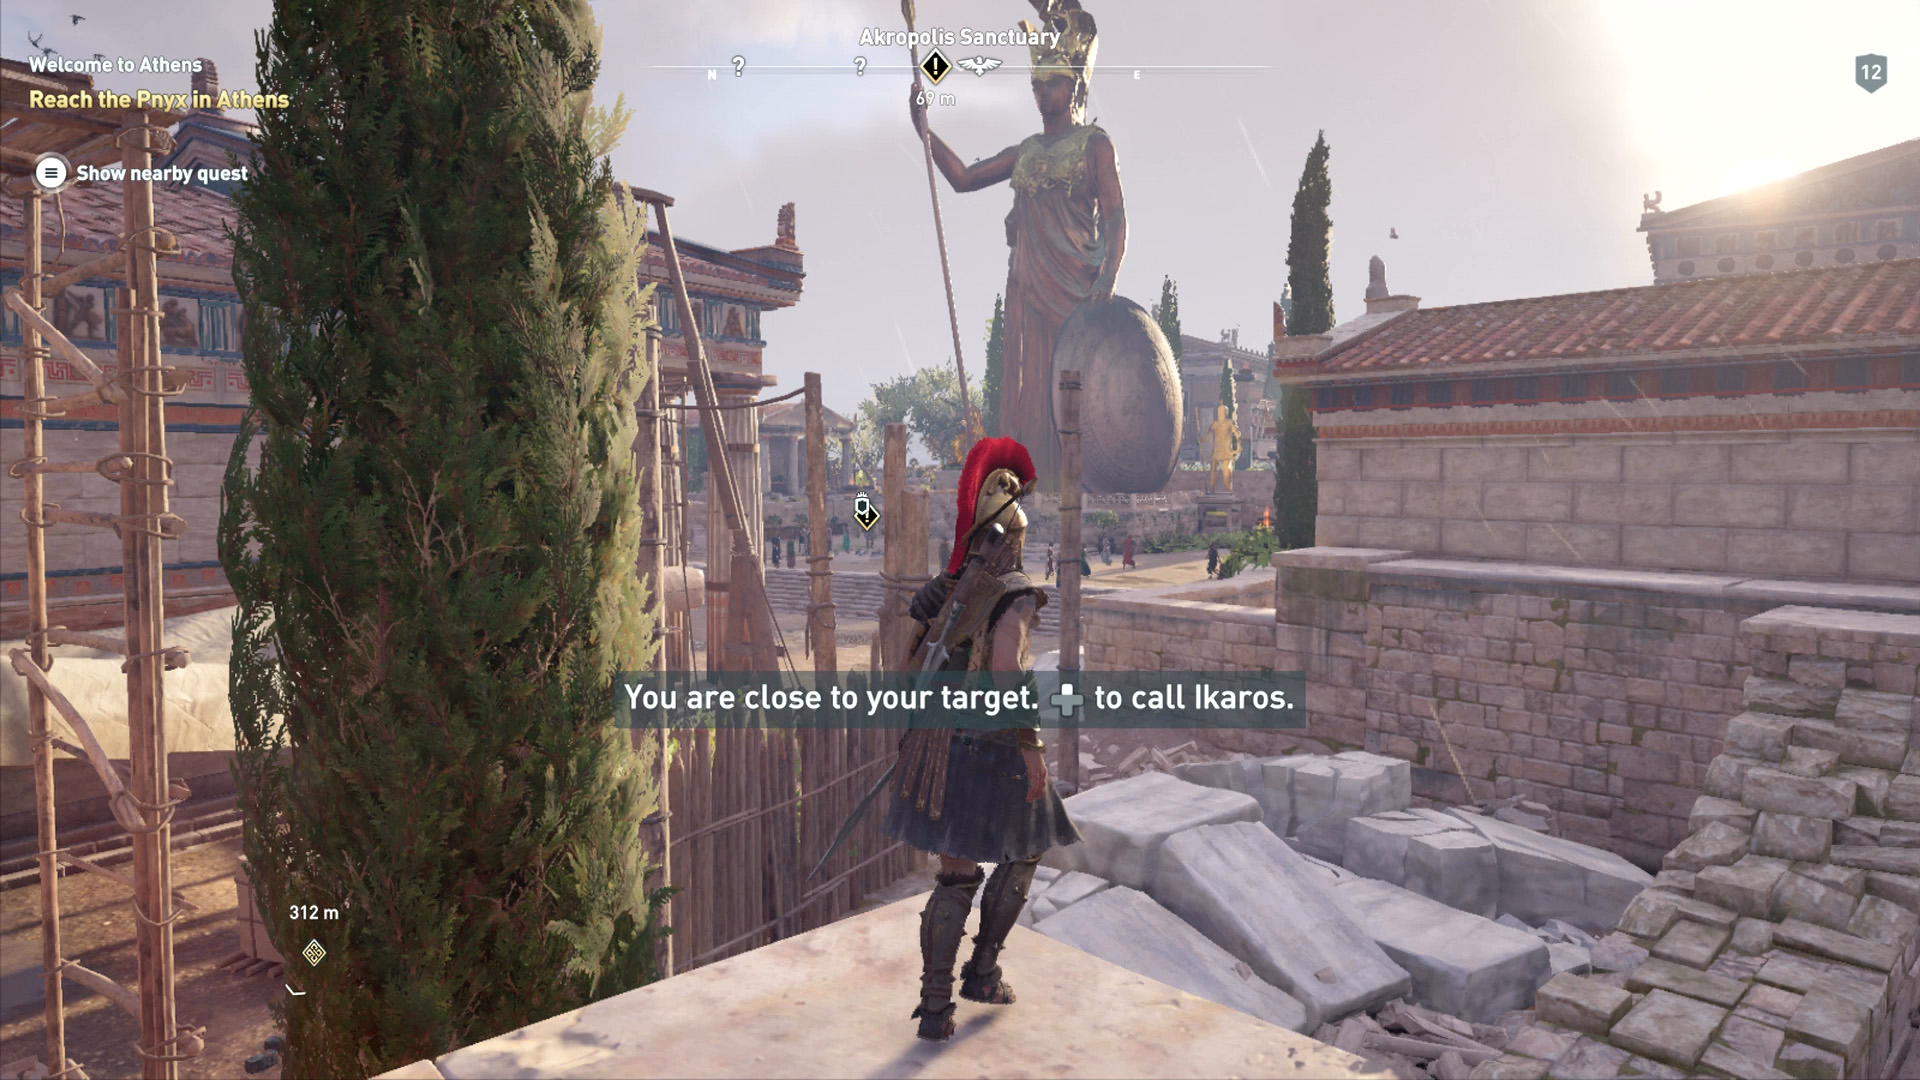 Kassandra on a rooftop in Attica, looking at the Statue of Athena.